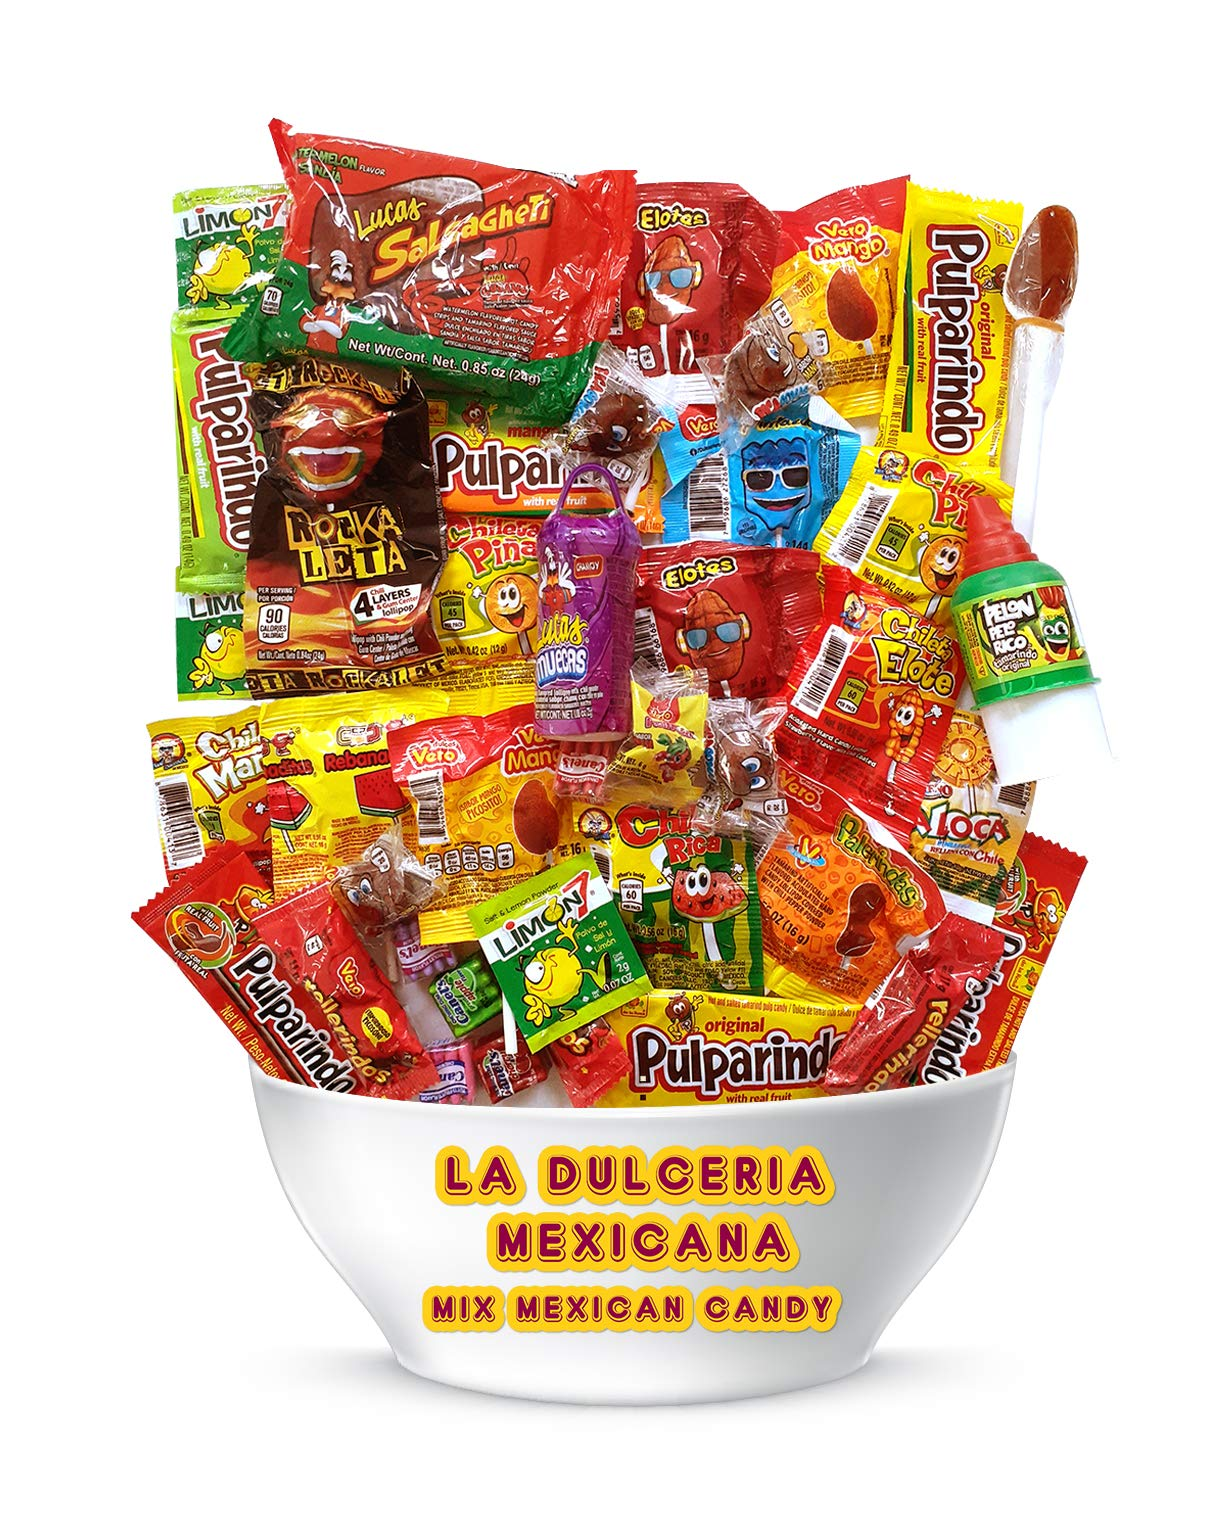 """Mexican Candy Assortment Mix (36 Count) """"La Dulceria Mexicana"""" Variety of Spicy, Sweet, Sour, Includes Lucas, Pulparindo, Pelon, Rebanaditas, Vero, Azteca Chileta by Look-On"""